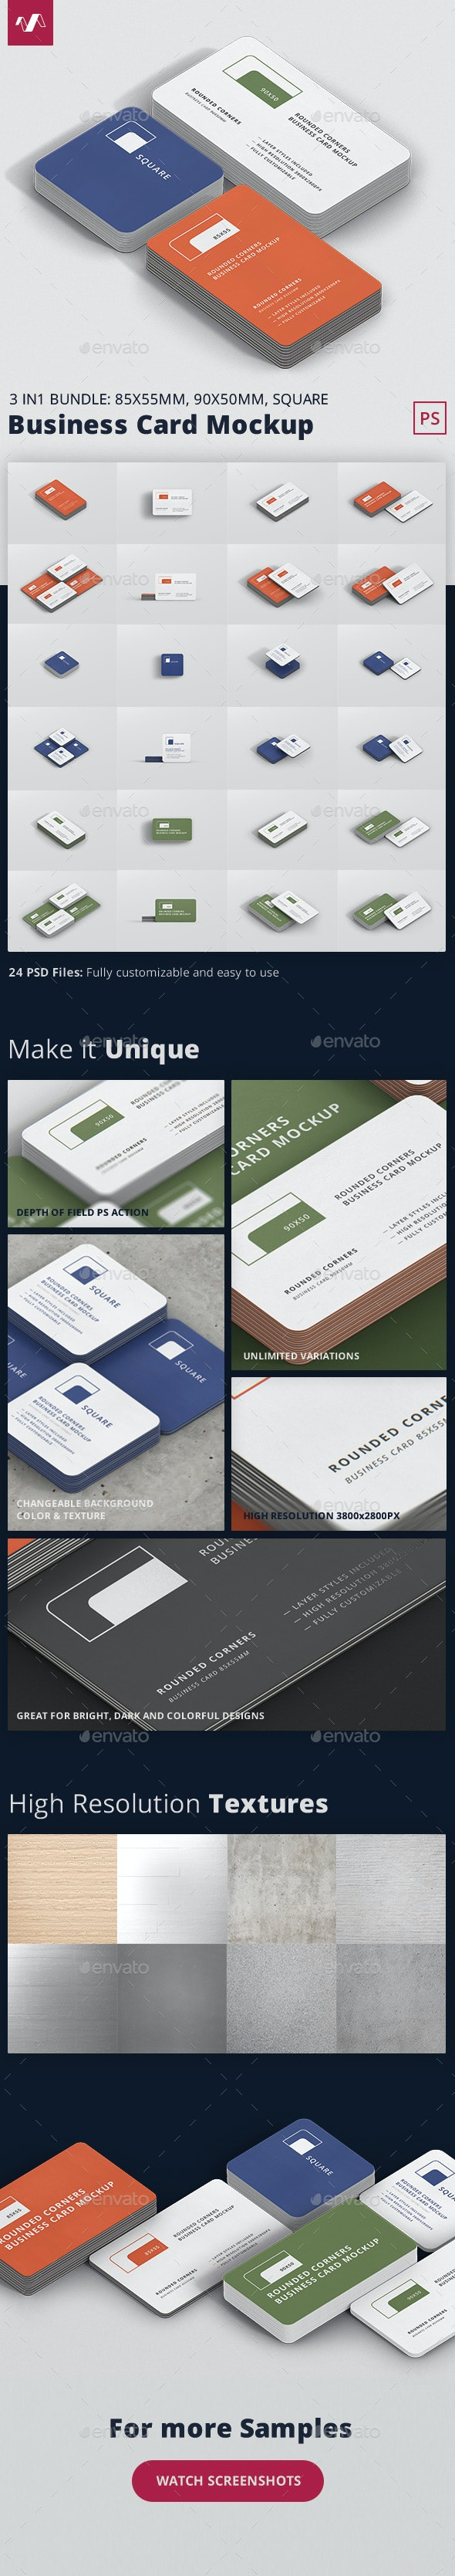 Business Card Mockup Bundle Stack Round Corners - Business Cards Print